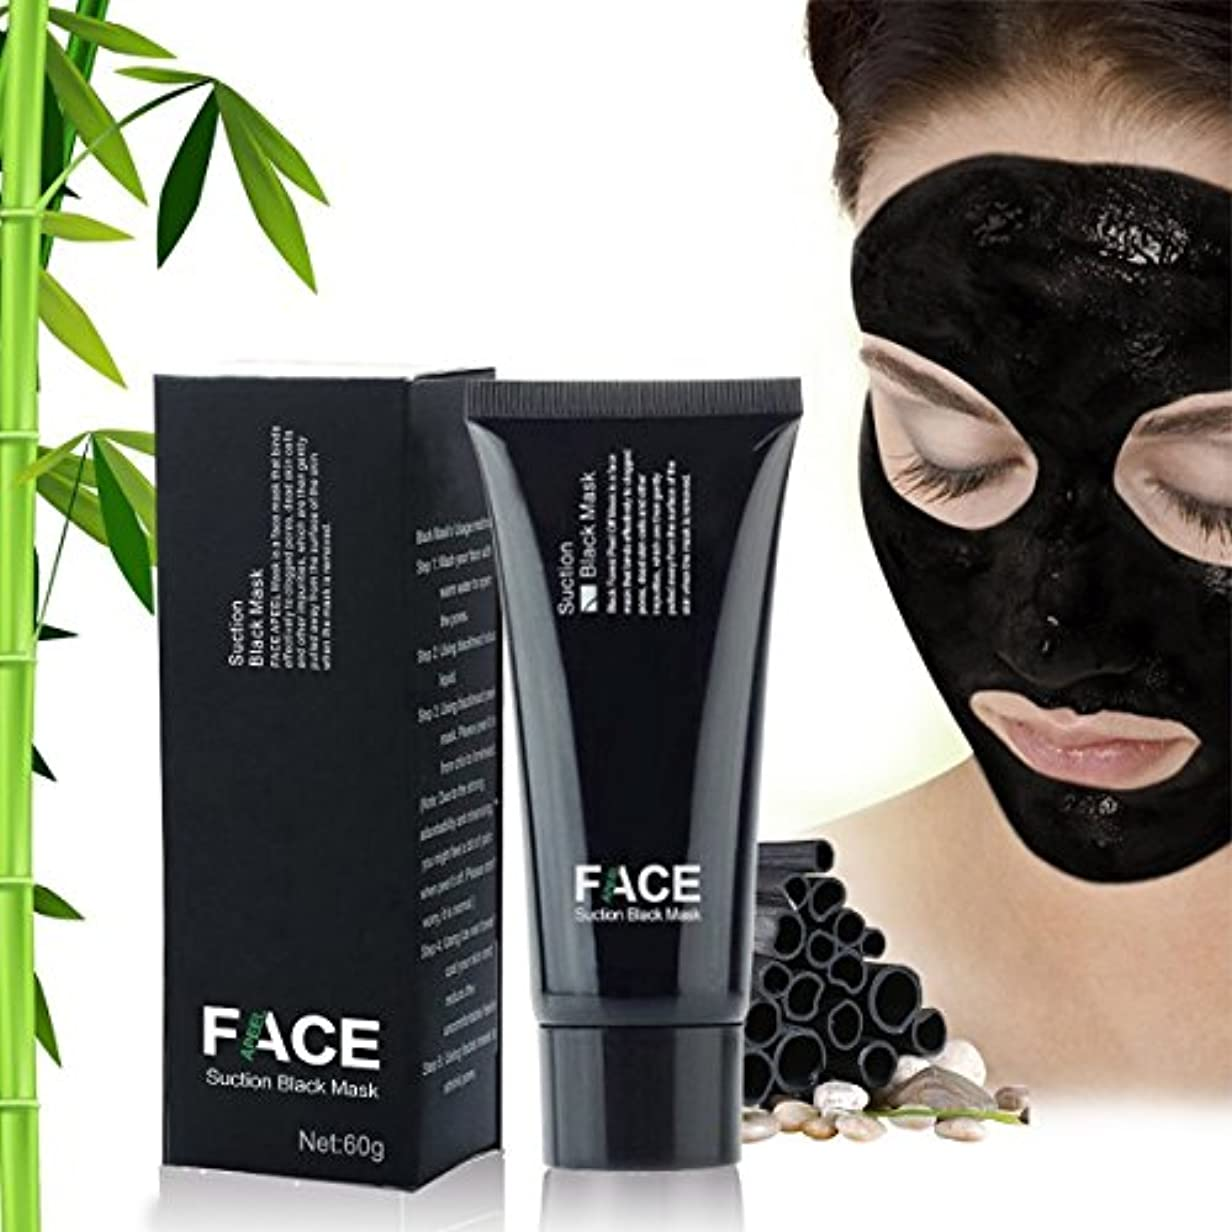 渦パンツ治安判事Face Apeel Blackhead Remover - Peel-off Mask for Men and Women - Deep Cleans Better than Pore Strips for Instantly